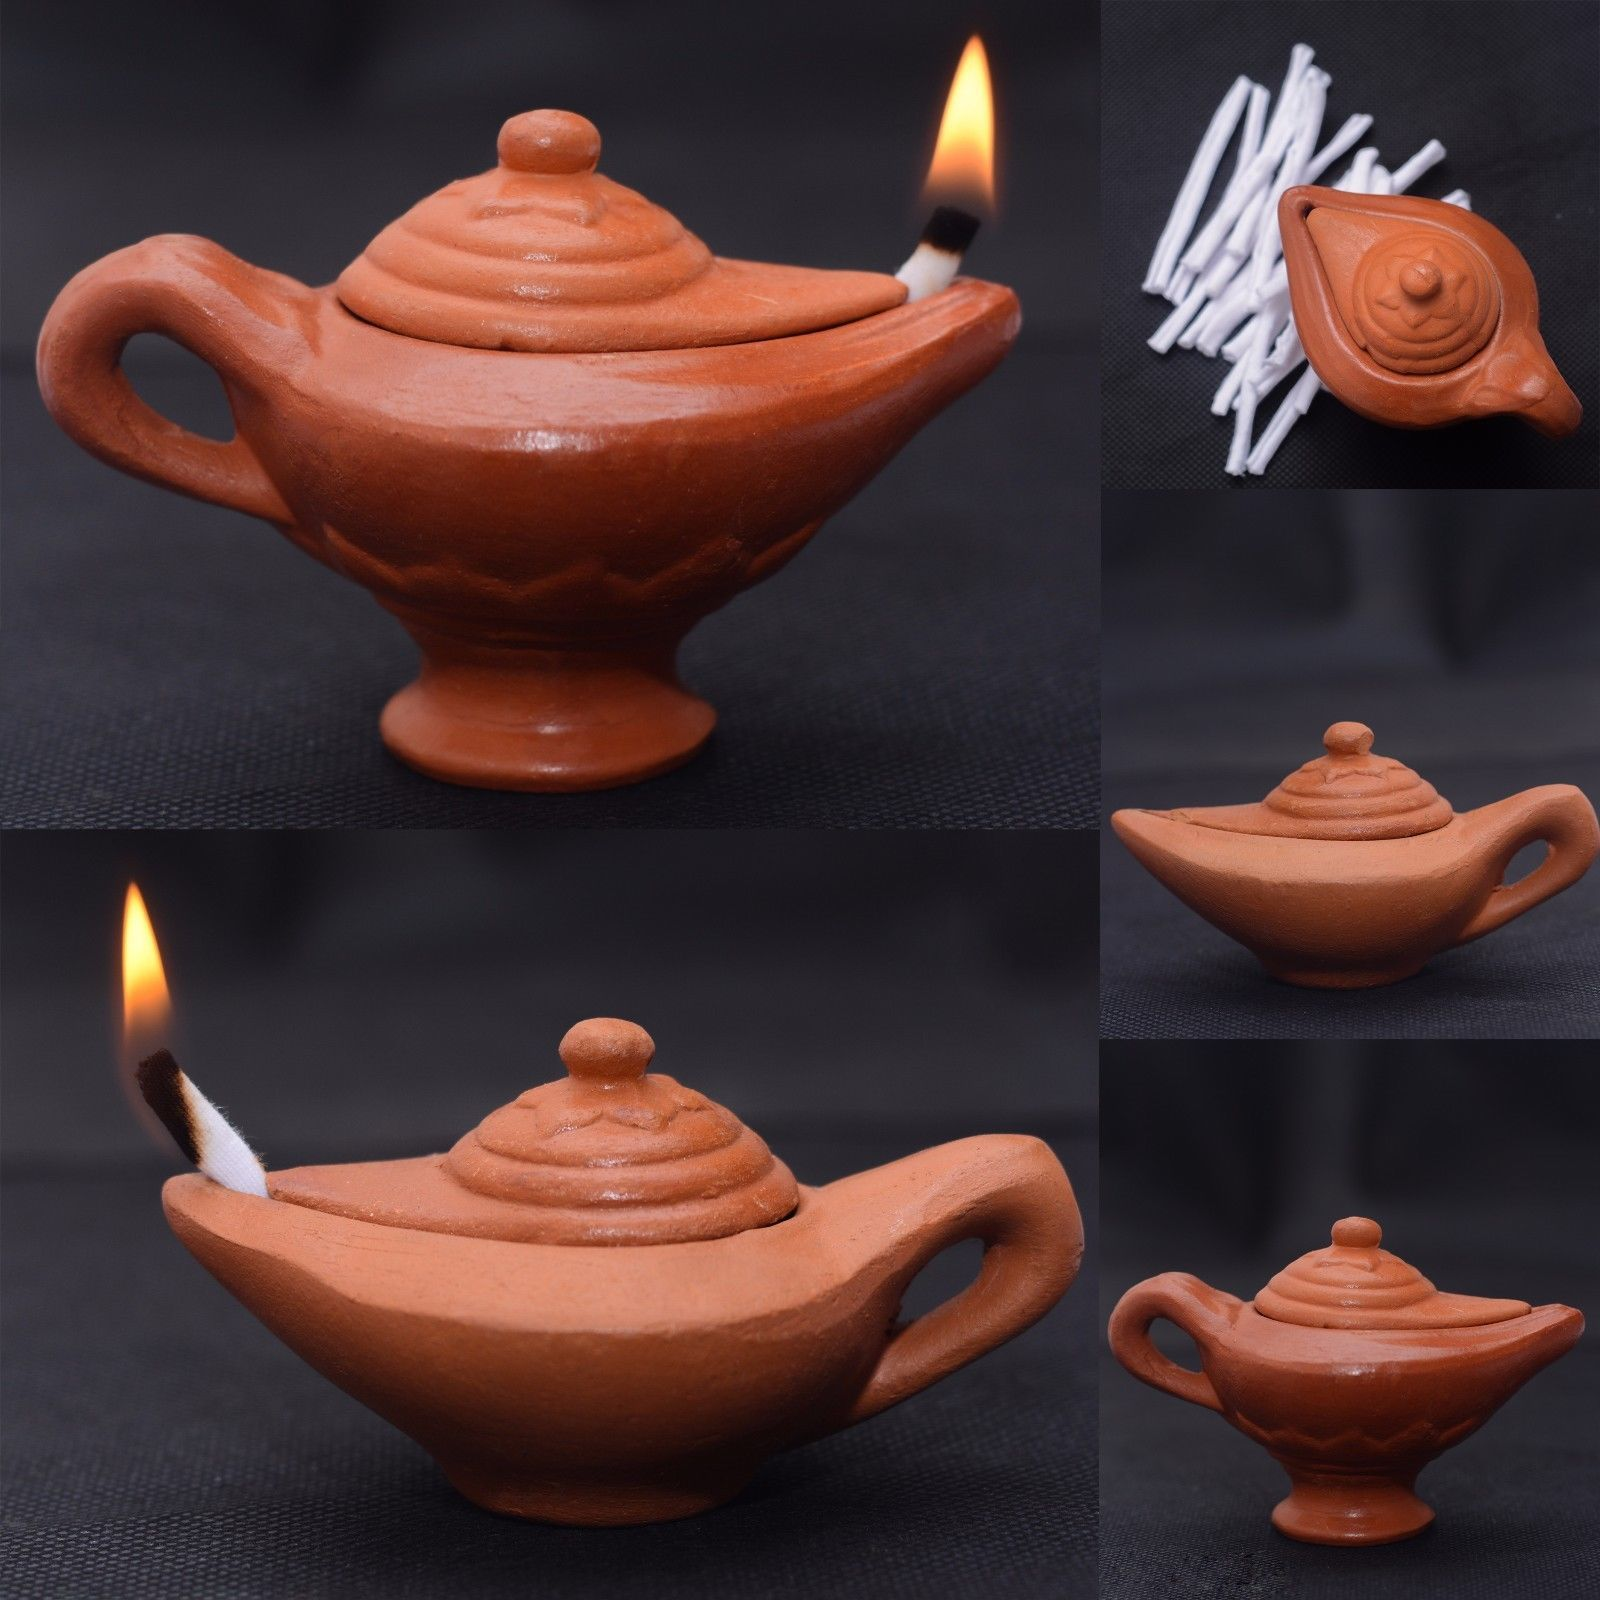 3 48 Clay Lamp Home Decors Aladdin Oil Lamp 20 Wicks Free Home Made Separate Lid Ebay Home Garden Oil Lamps Clay Kids Clay